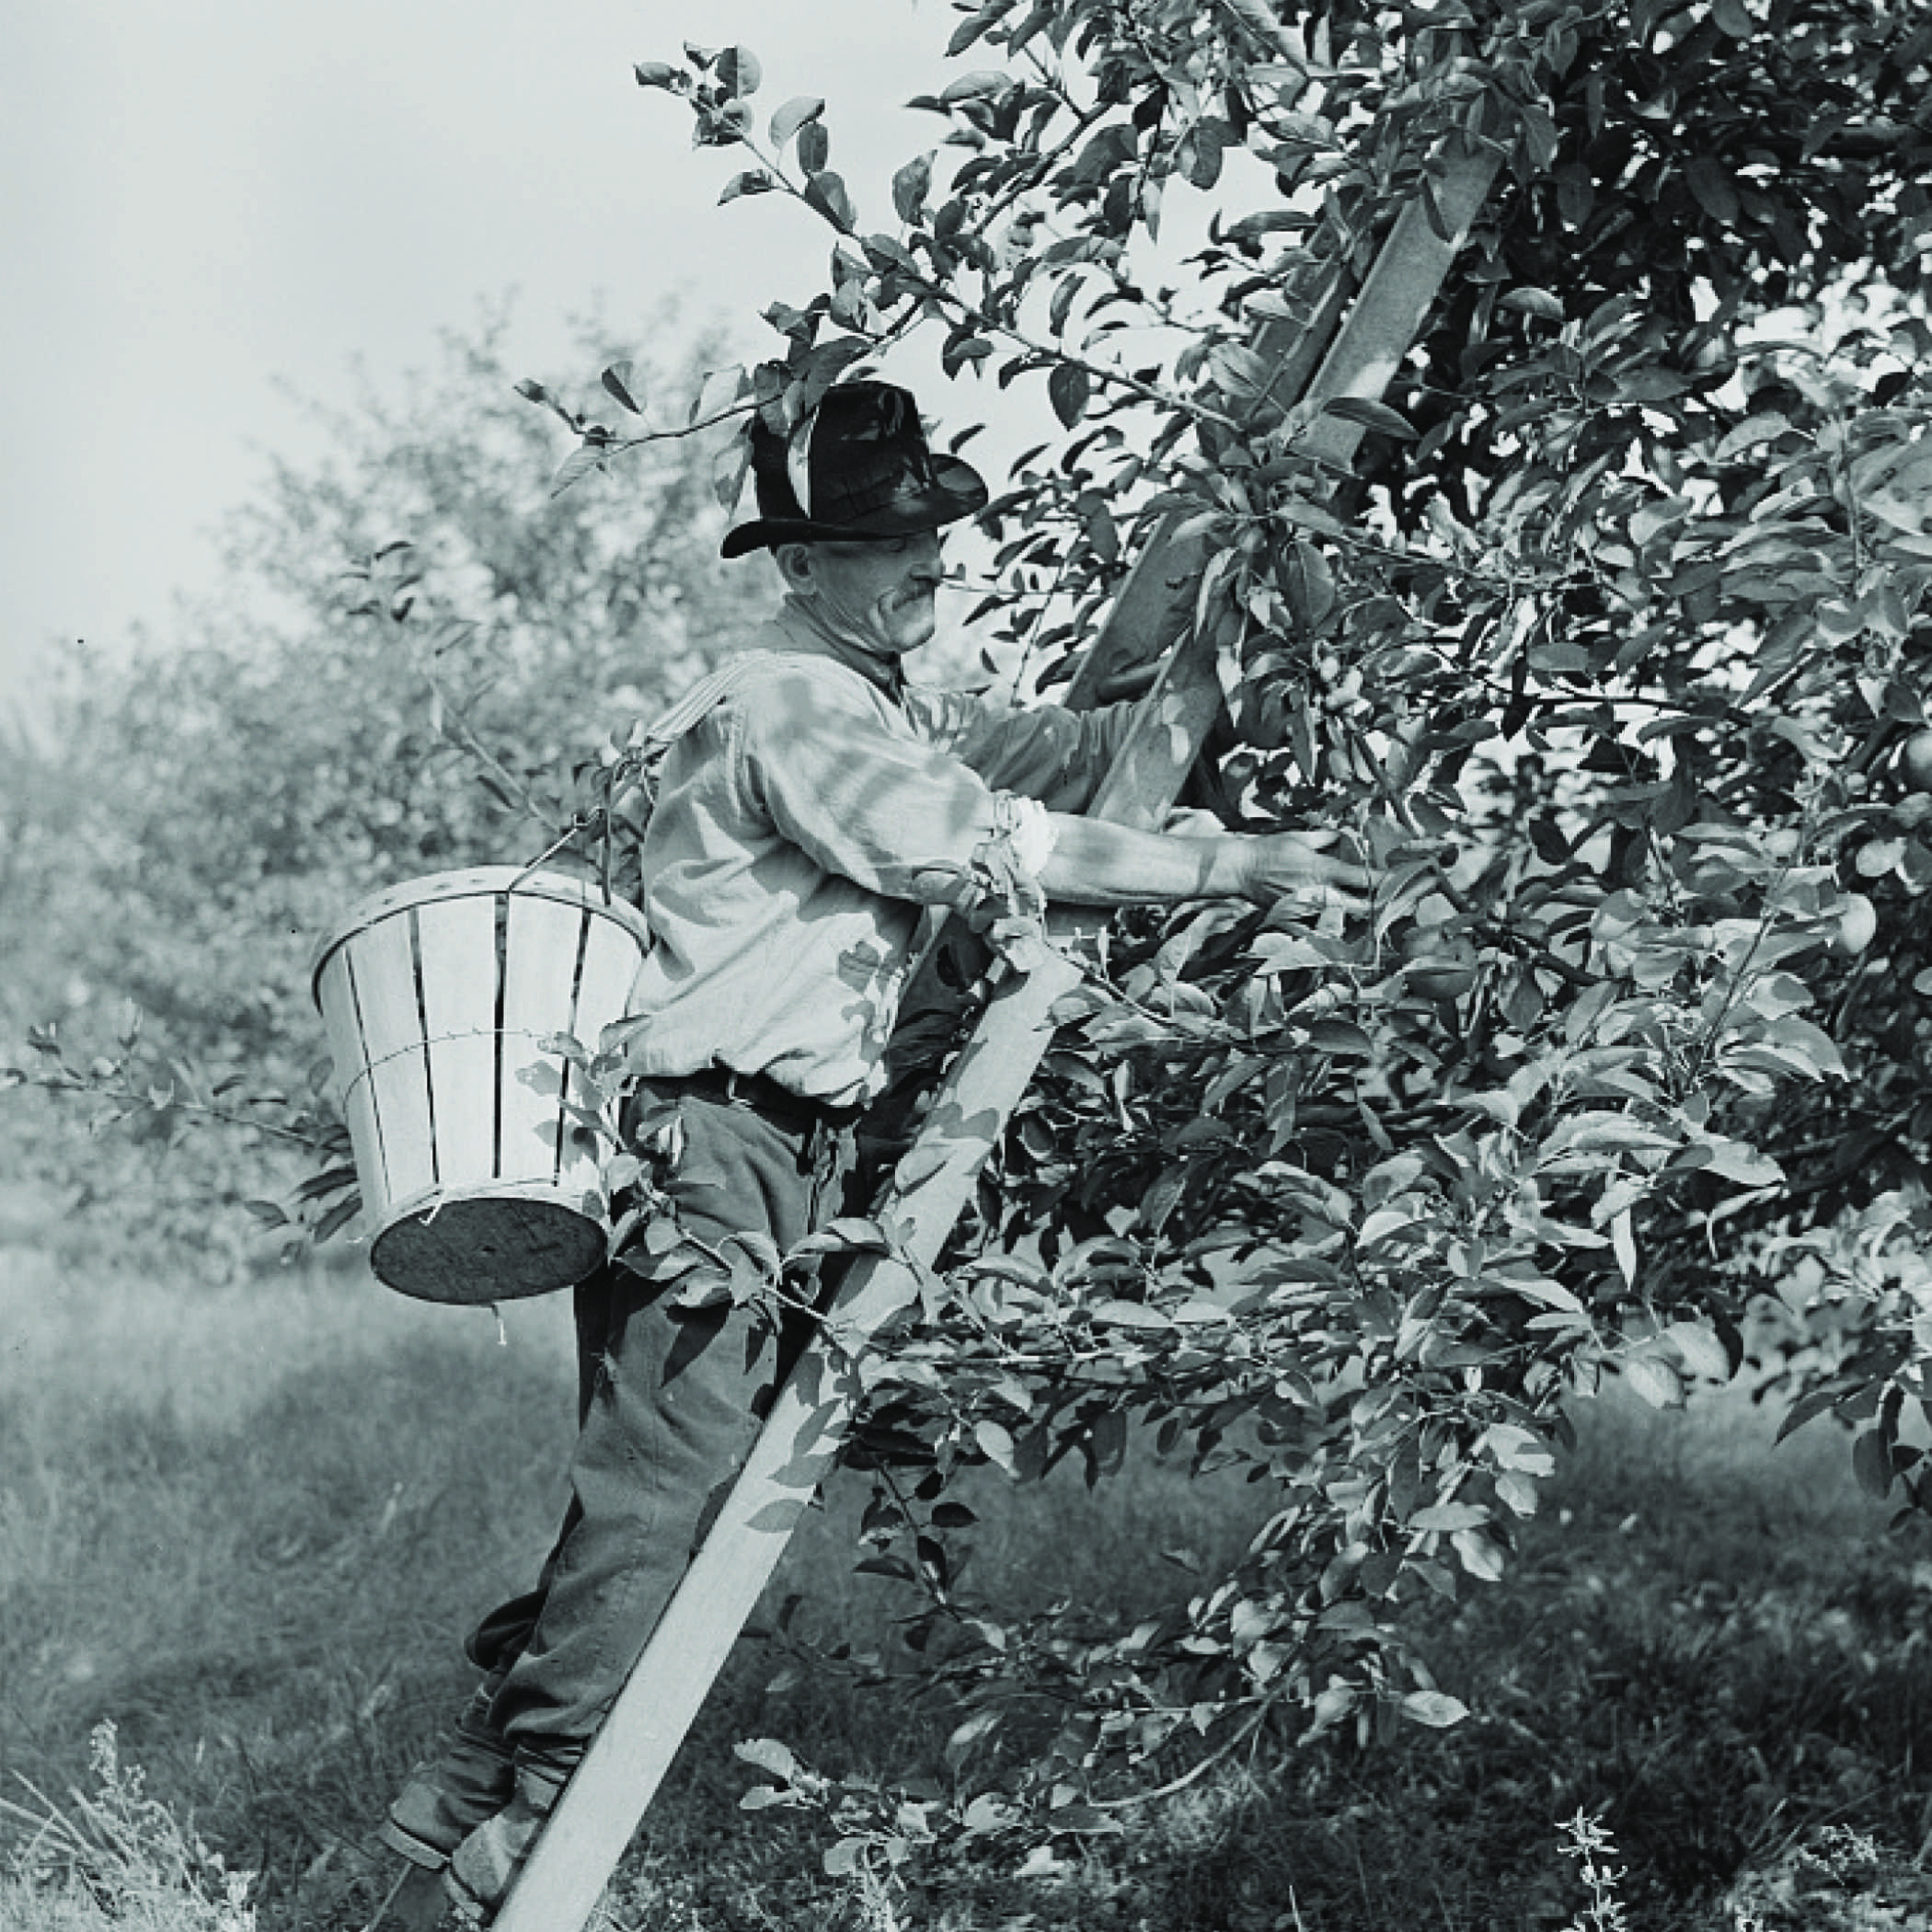 black and white photo from the 1930s of a farmer picking apples. He is on a ladder that is leaning against a tree and he has a bushel basket strapped to his back.